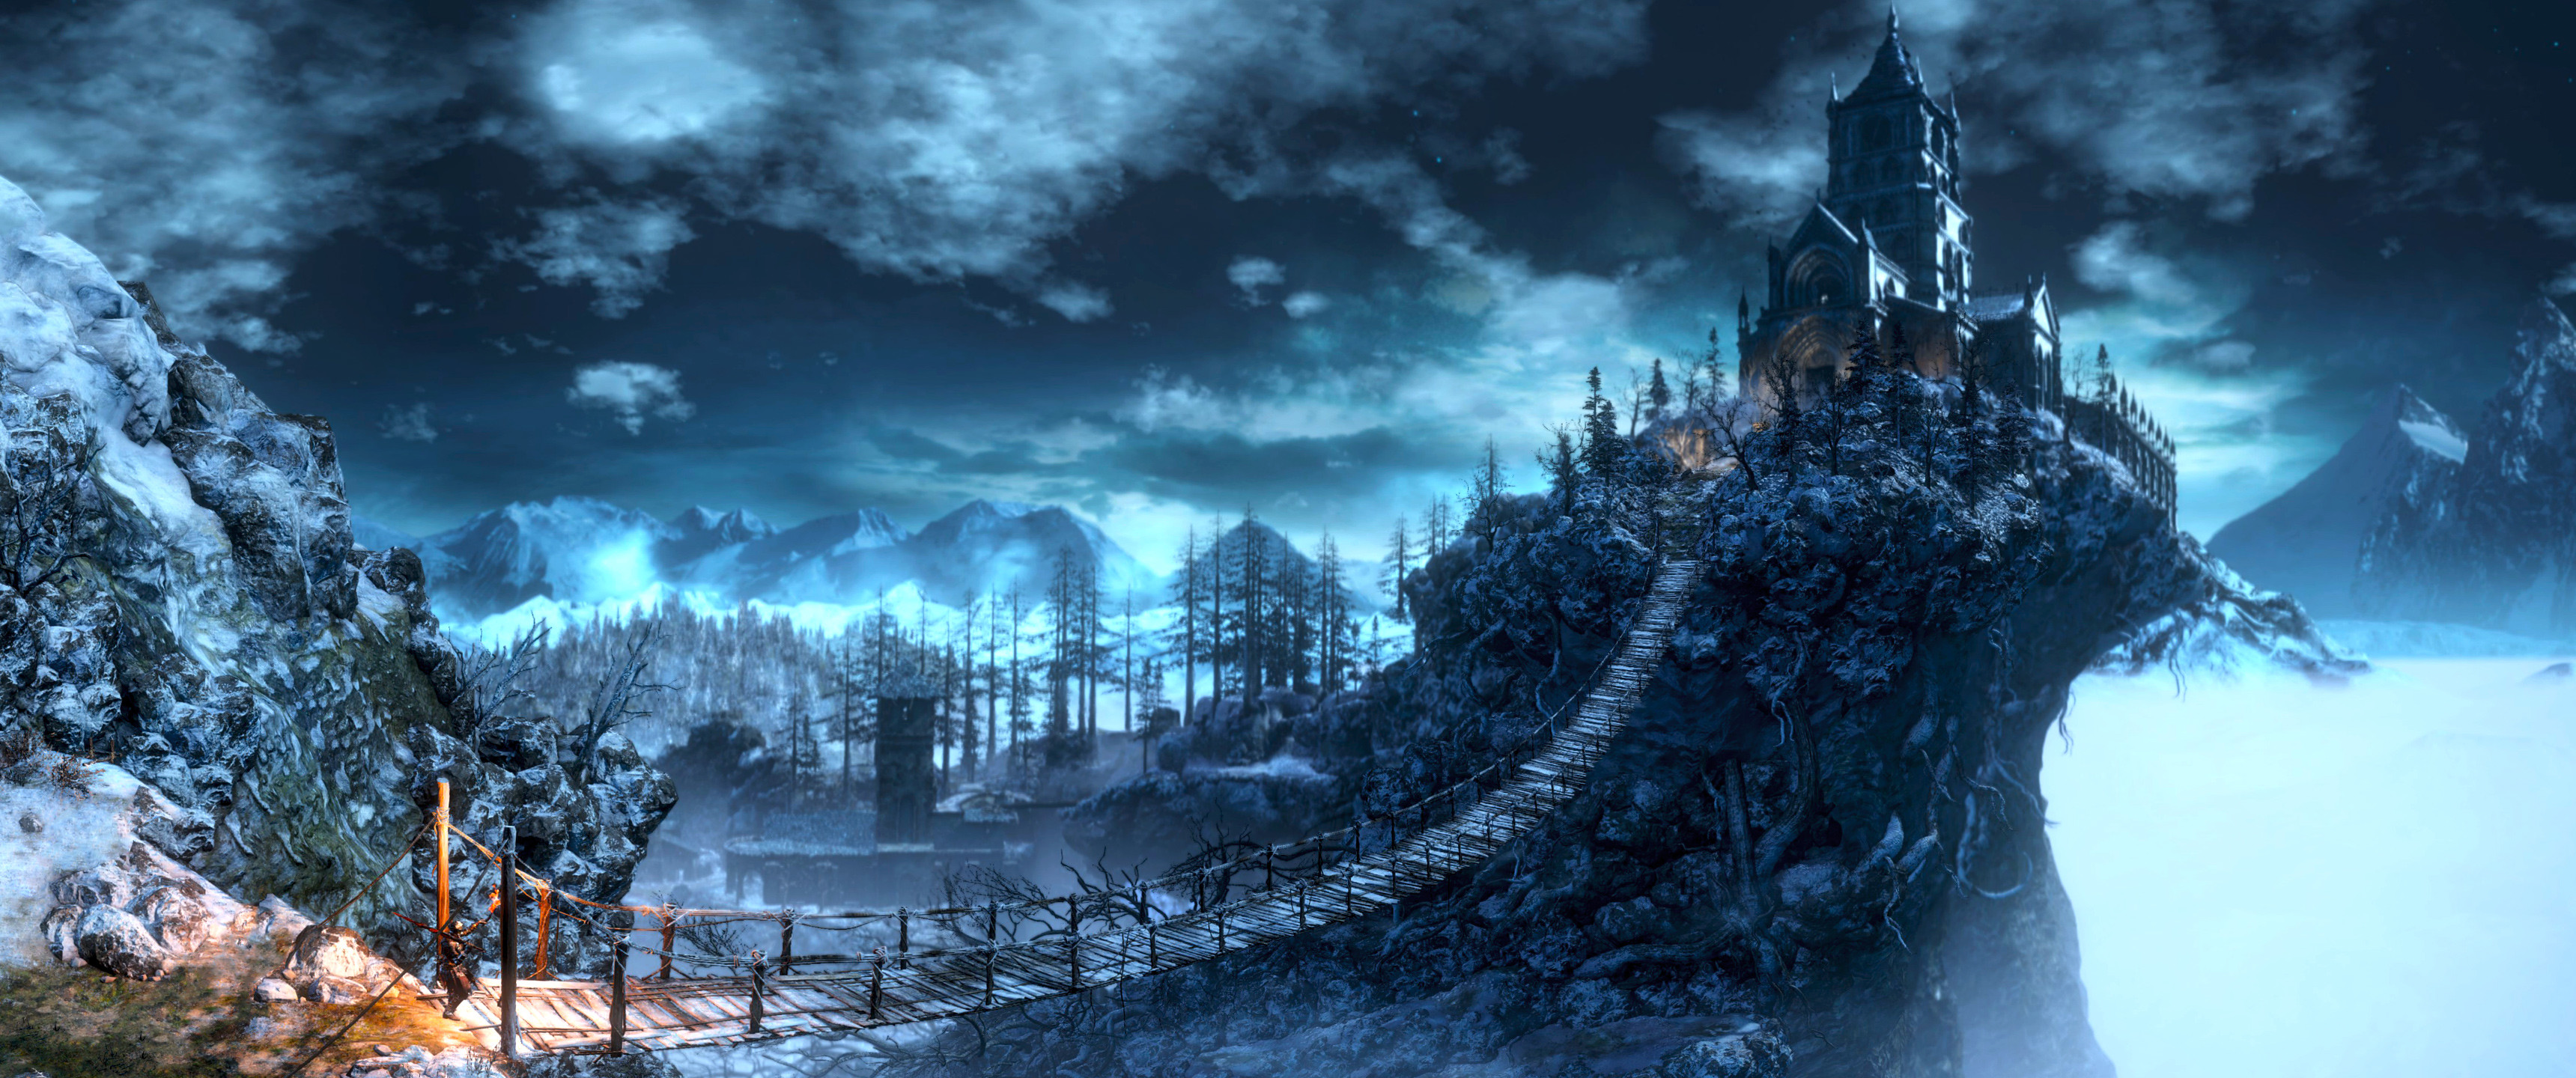 Dual Screen Hd Fantasy Wallpapers Get Your Fix Here: 3440x1440 HD Wallpaper (72+ Images